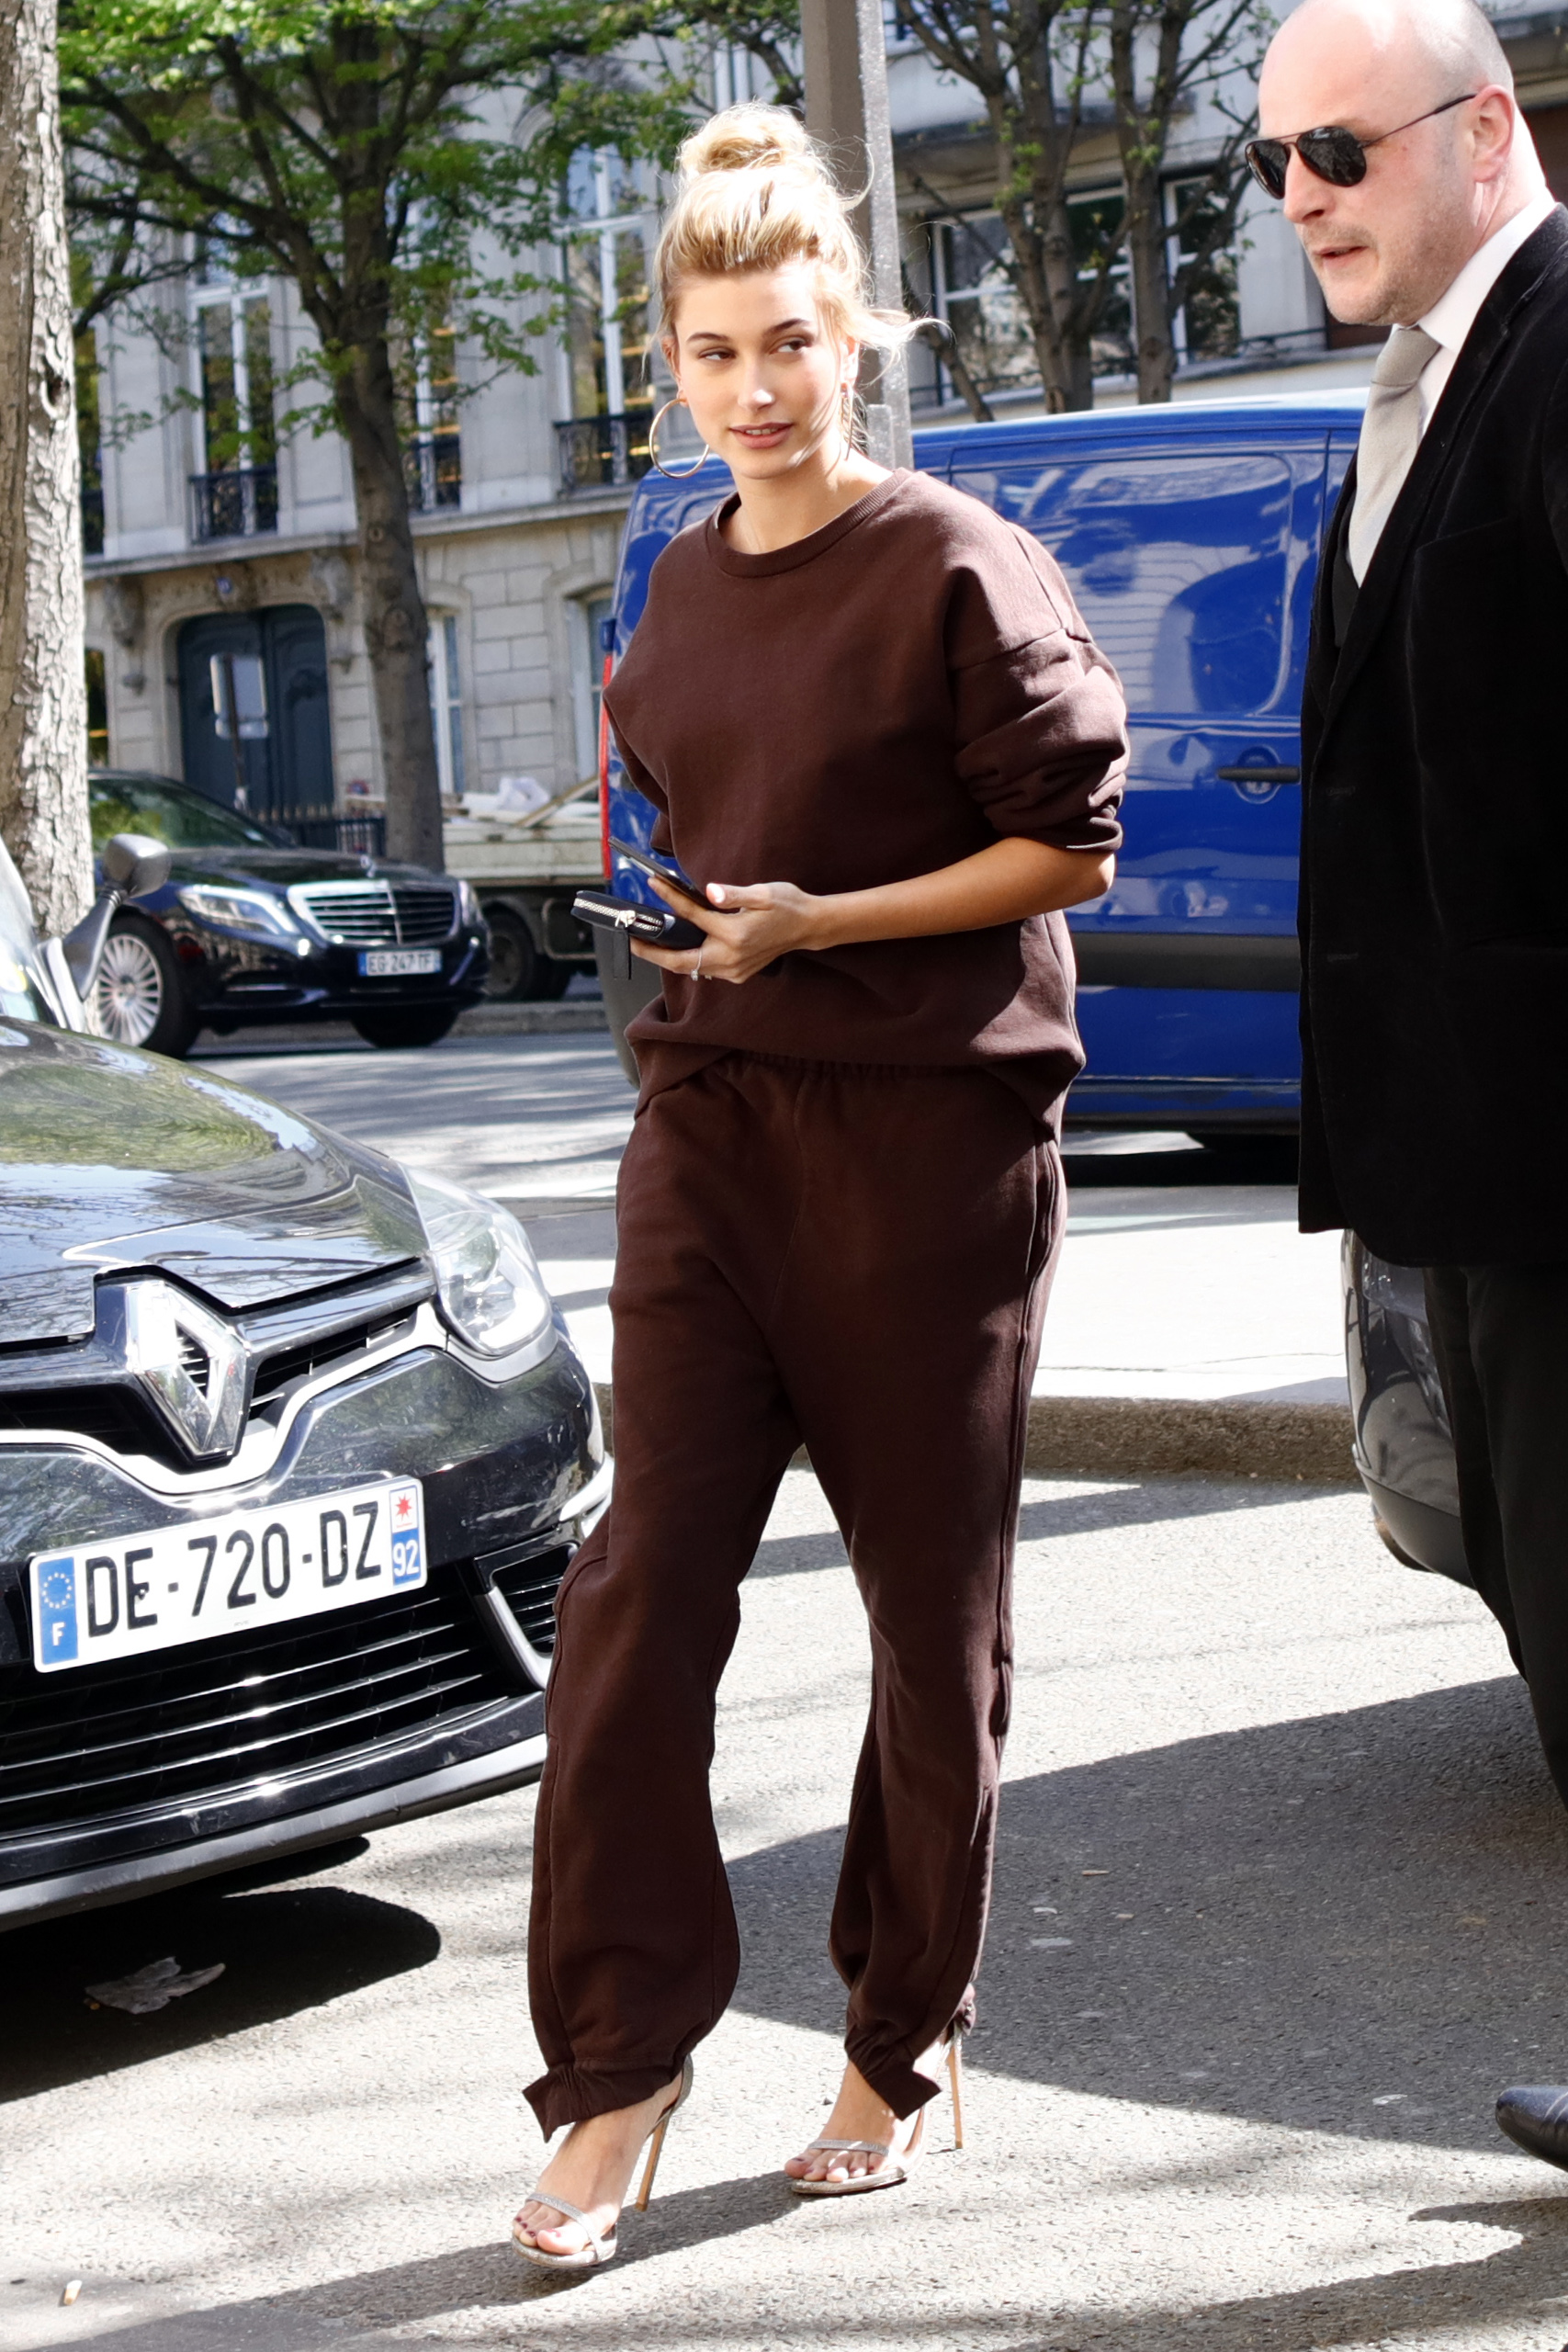 Hailey Baldwin out and about in Paris. Paris, France 27 Mar 2017